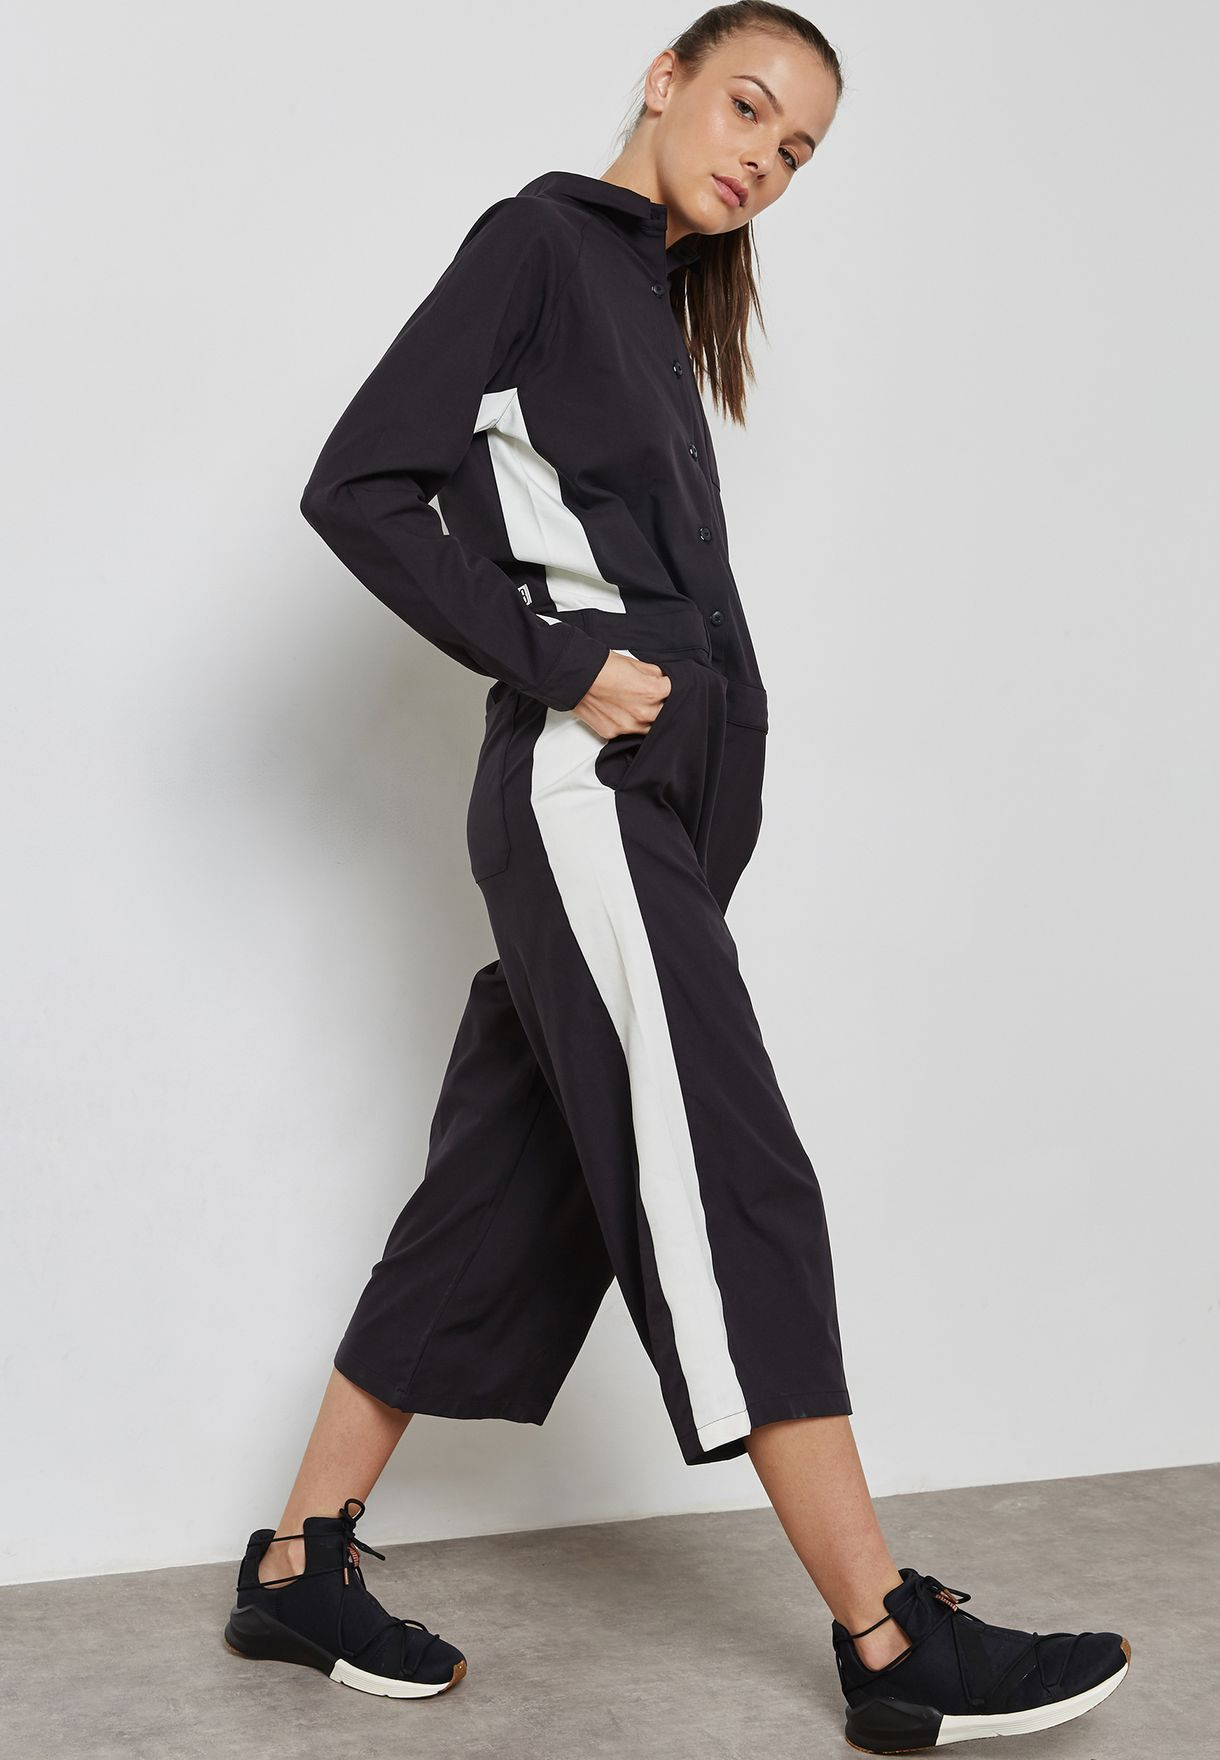 26218e6f267a Shop PUMA black True Archive Worker Overall Jumpsuit 57353101 for ...